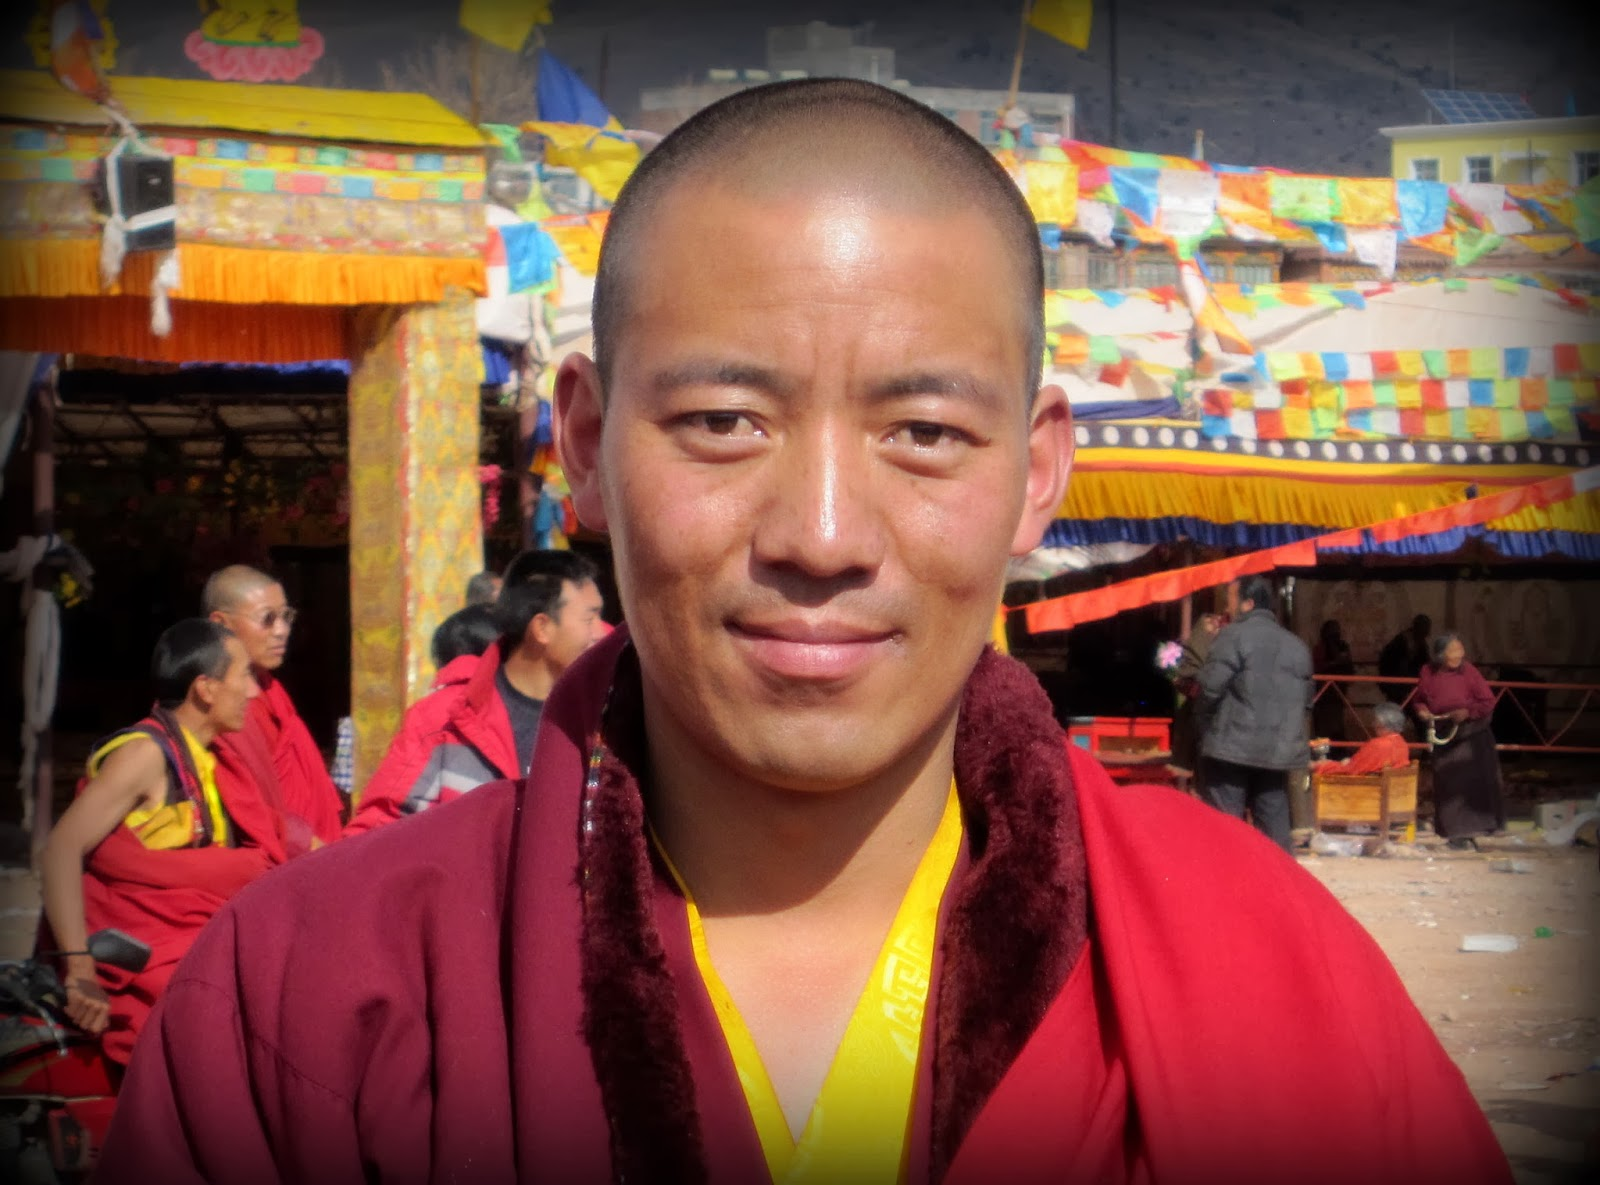 Popular Tibetan monk Karma Tsewang, 38, was detained on December 6, 2013 in Sichuan Province before being taken to the Tibet Autonomous Region.